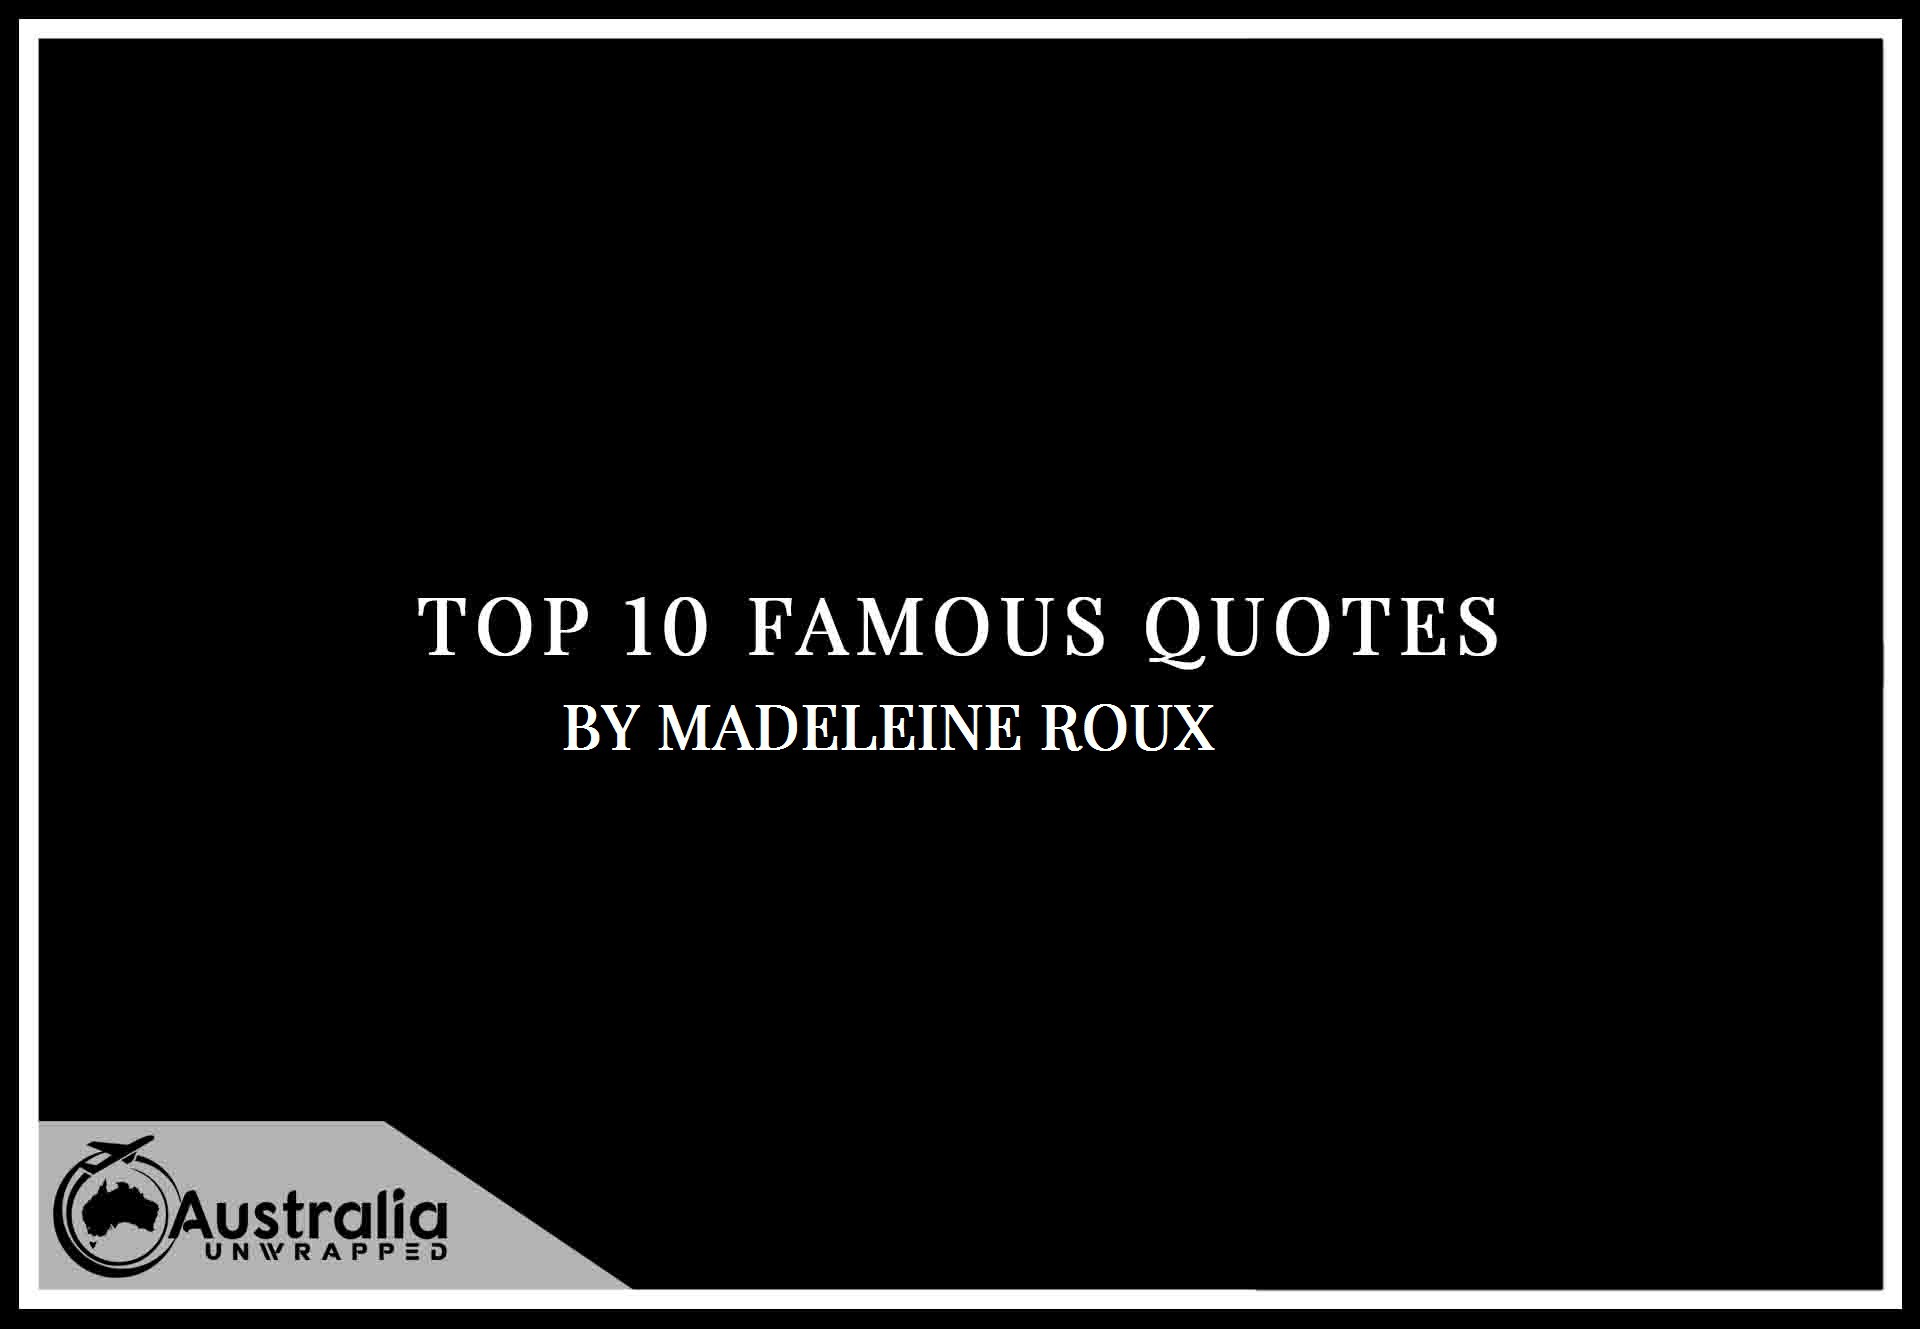 Madeleine Roux's Top 10 Popular and Famous Quotes